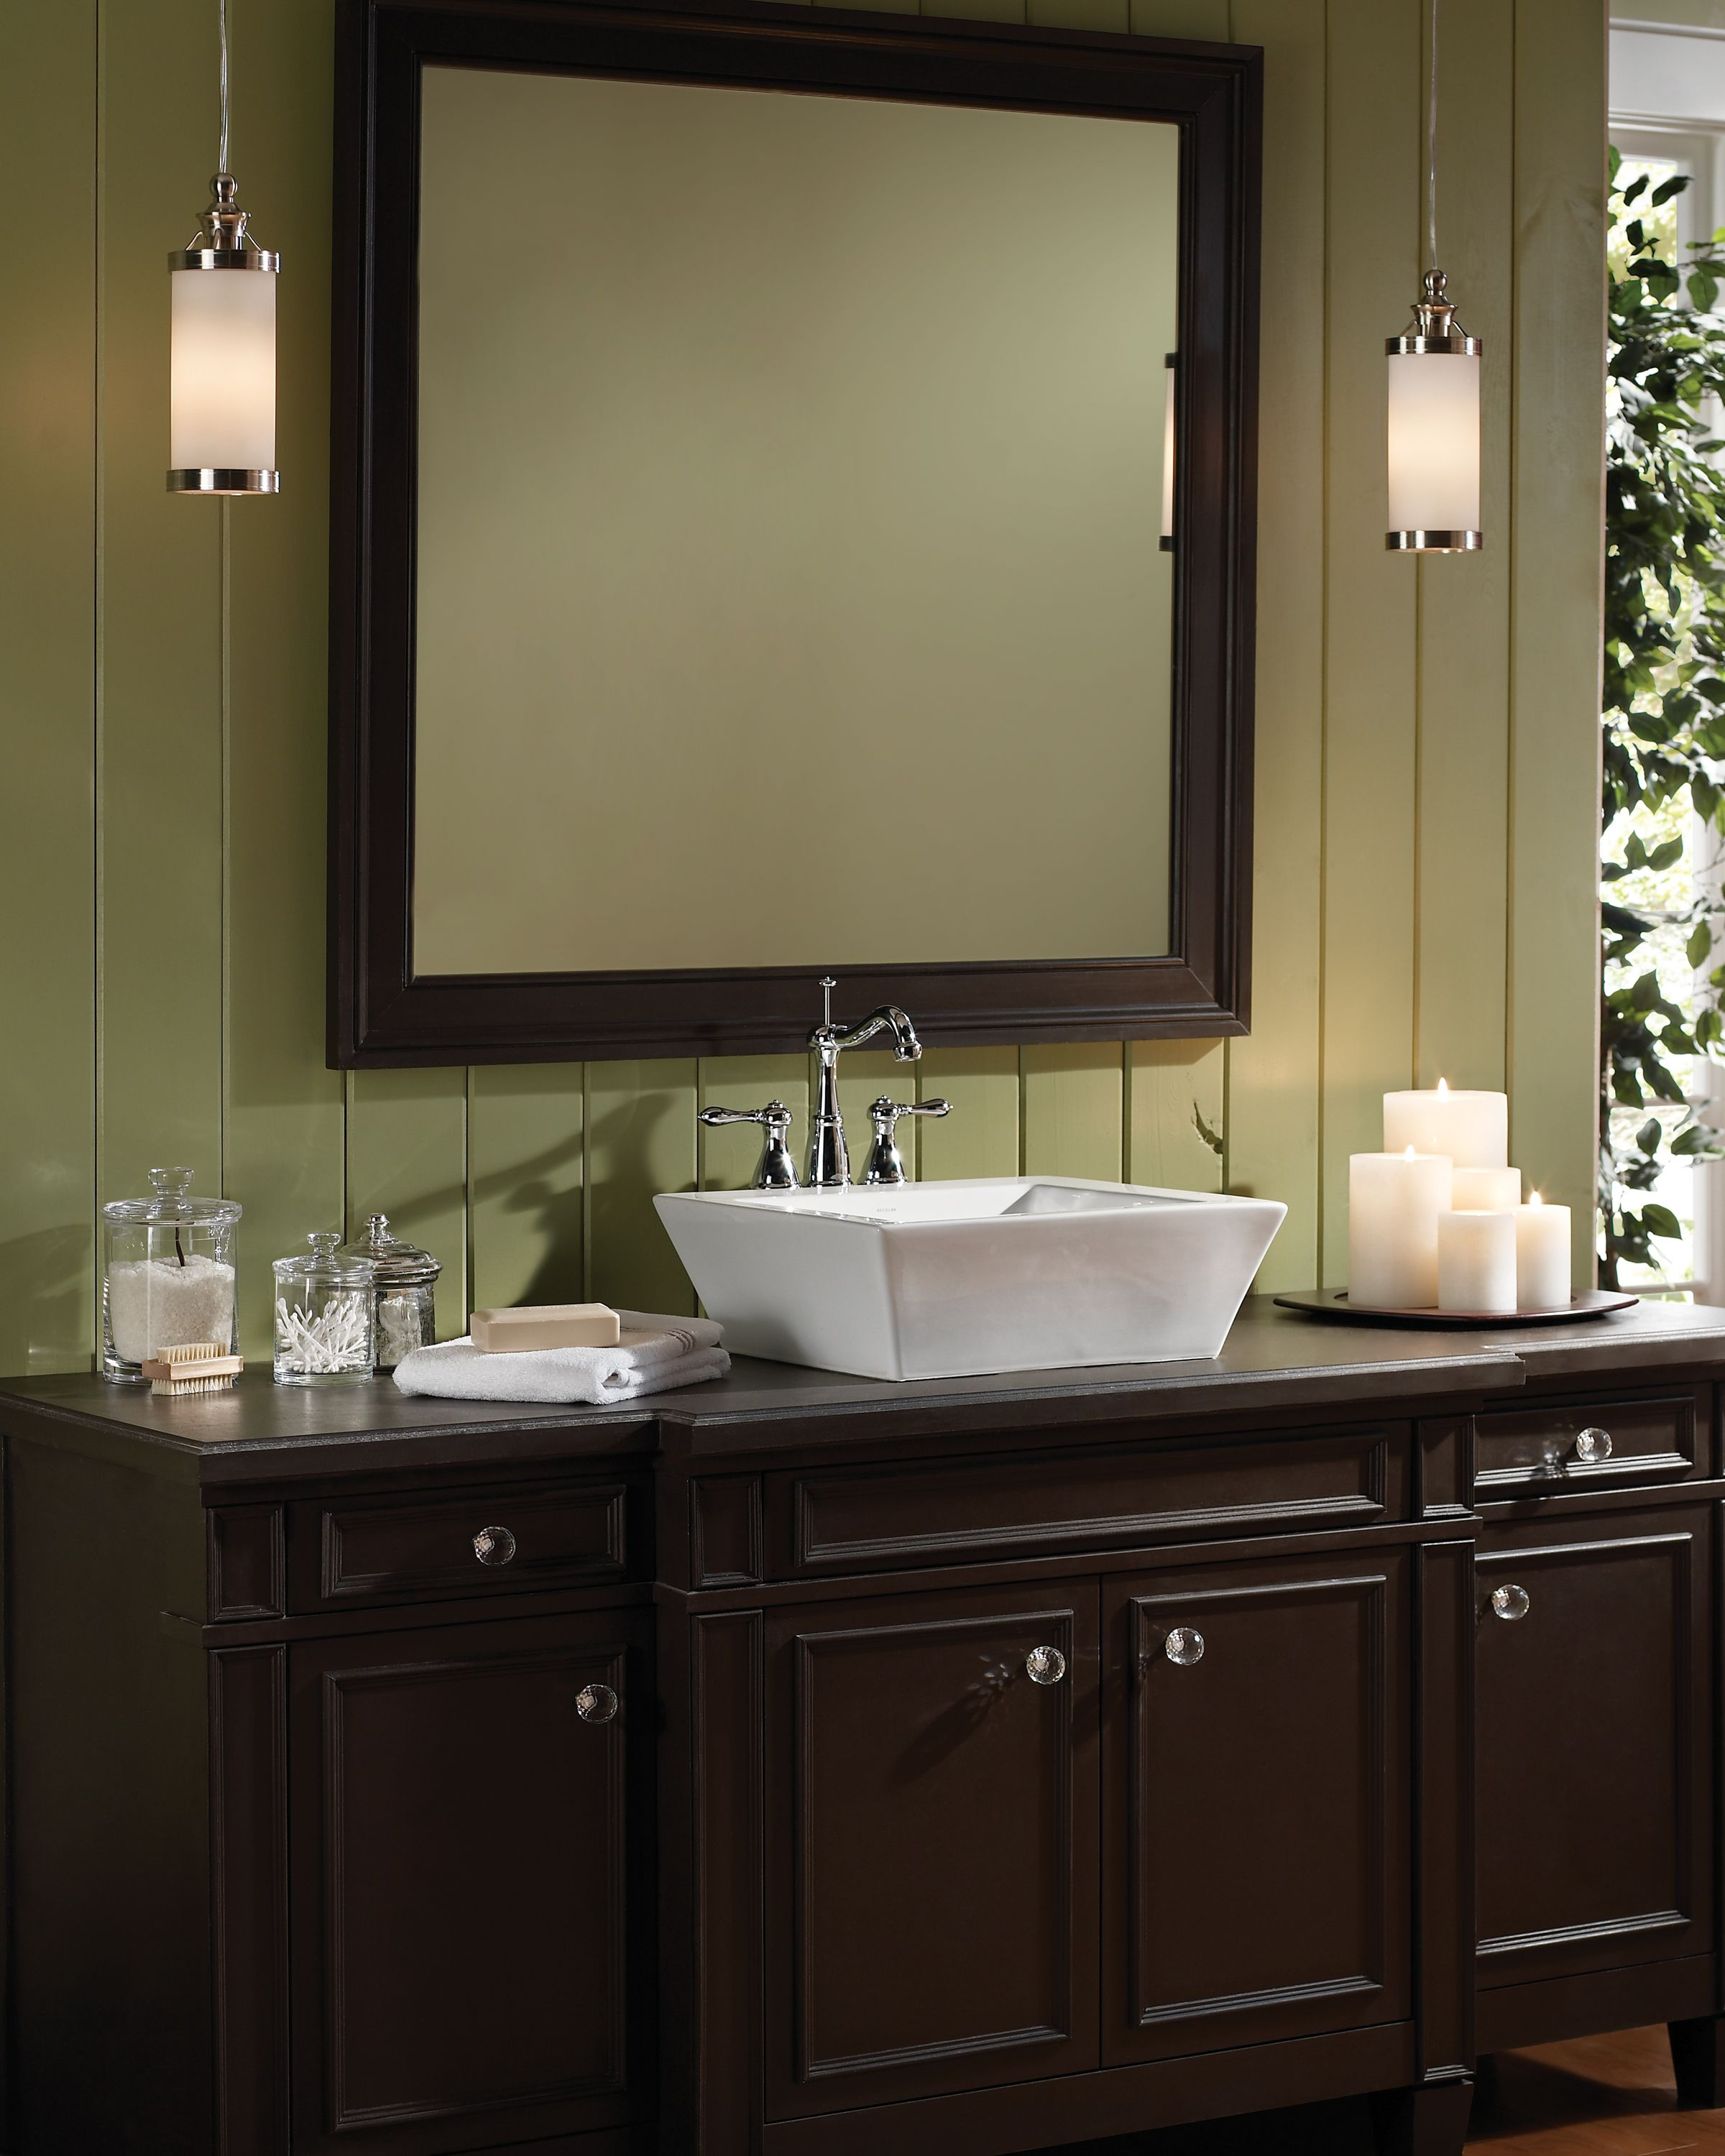 Bridgeport pendant by tech lighting in bathroom for Bathroom pendant lighting fixtures